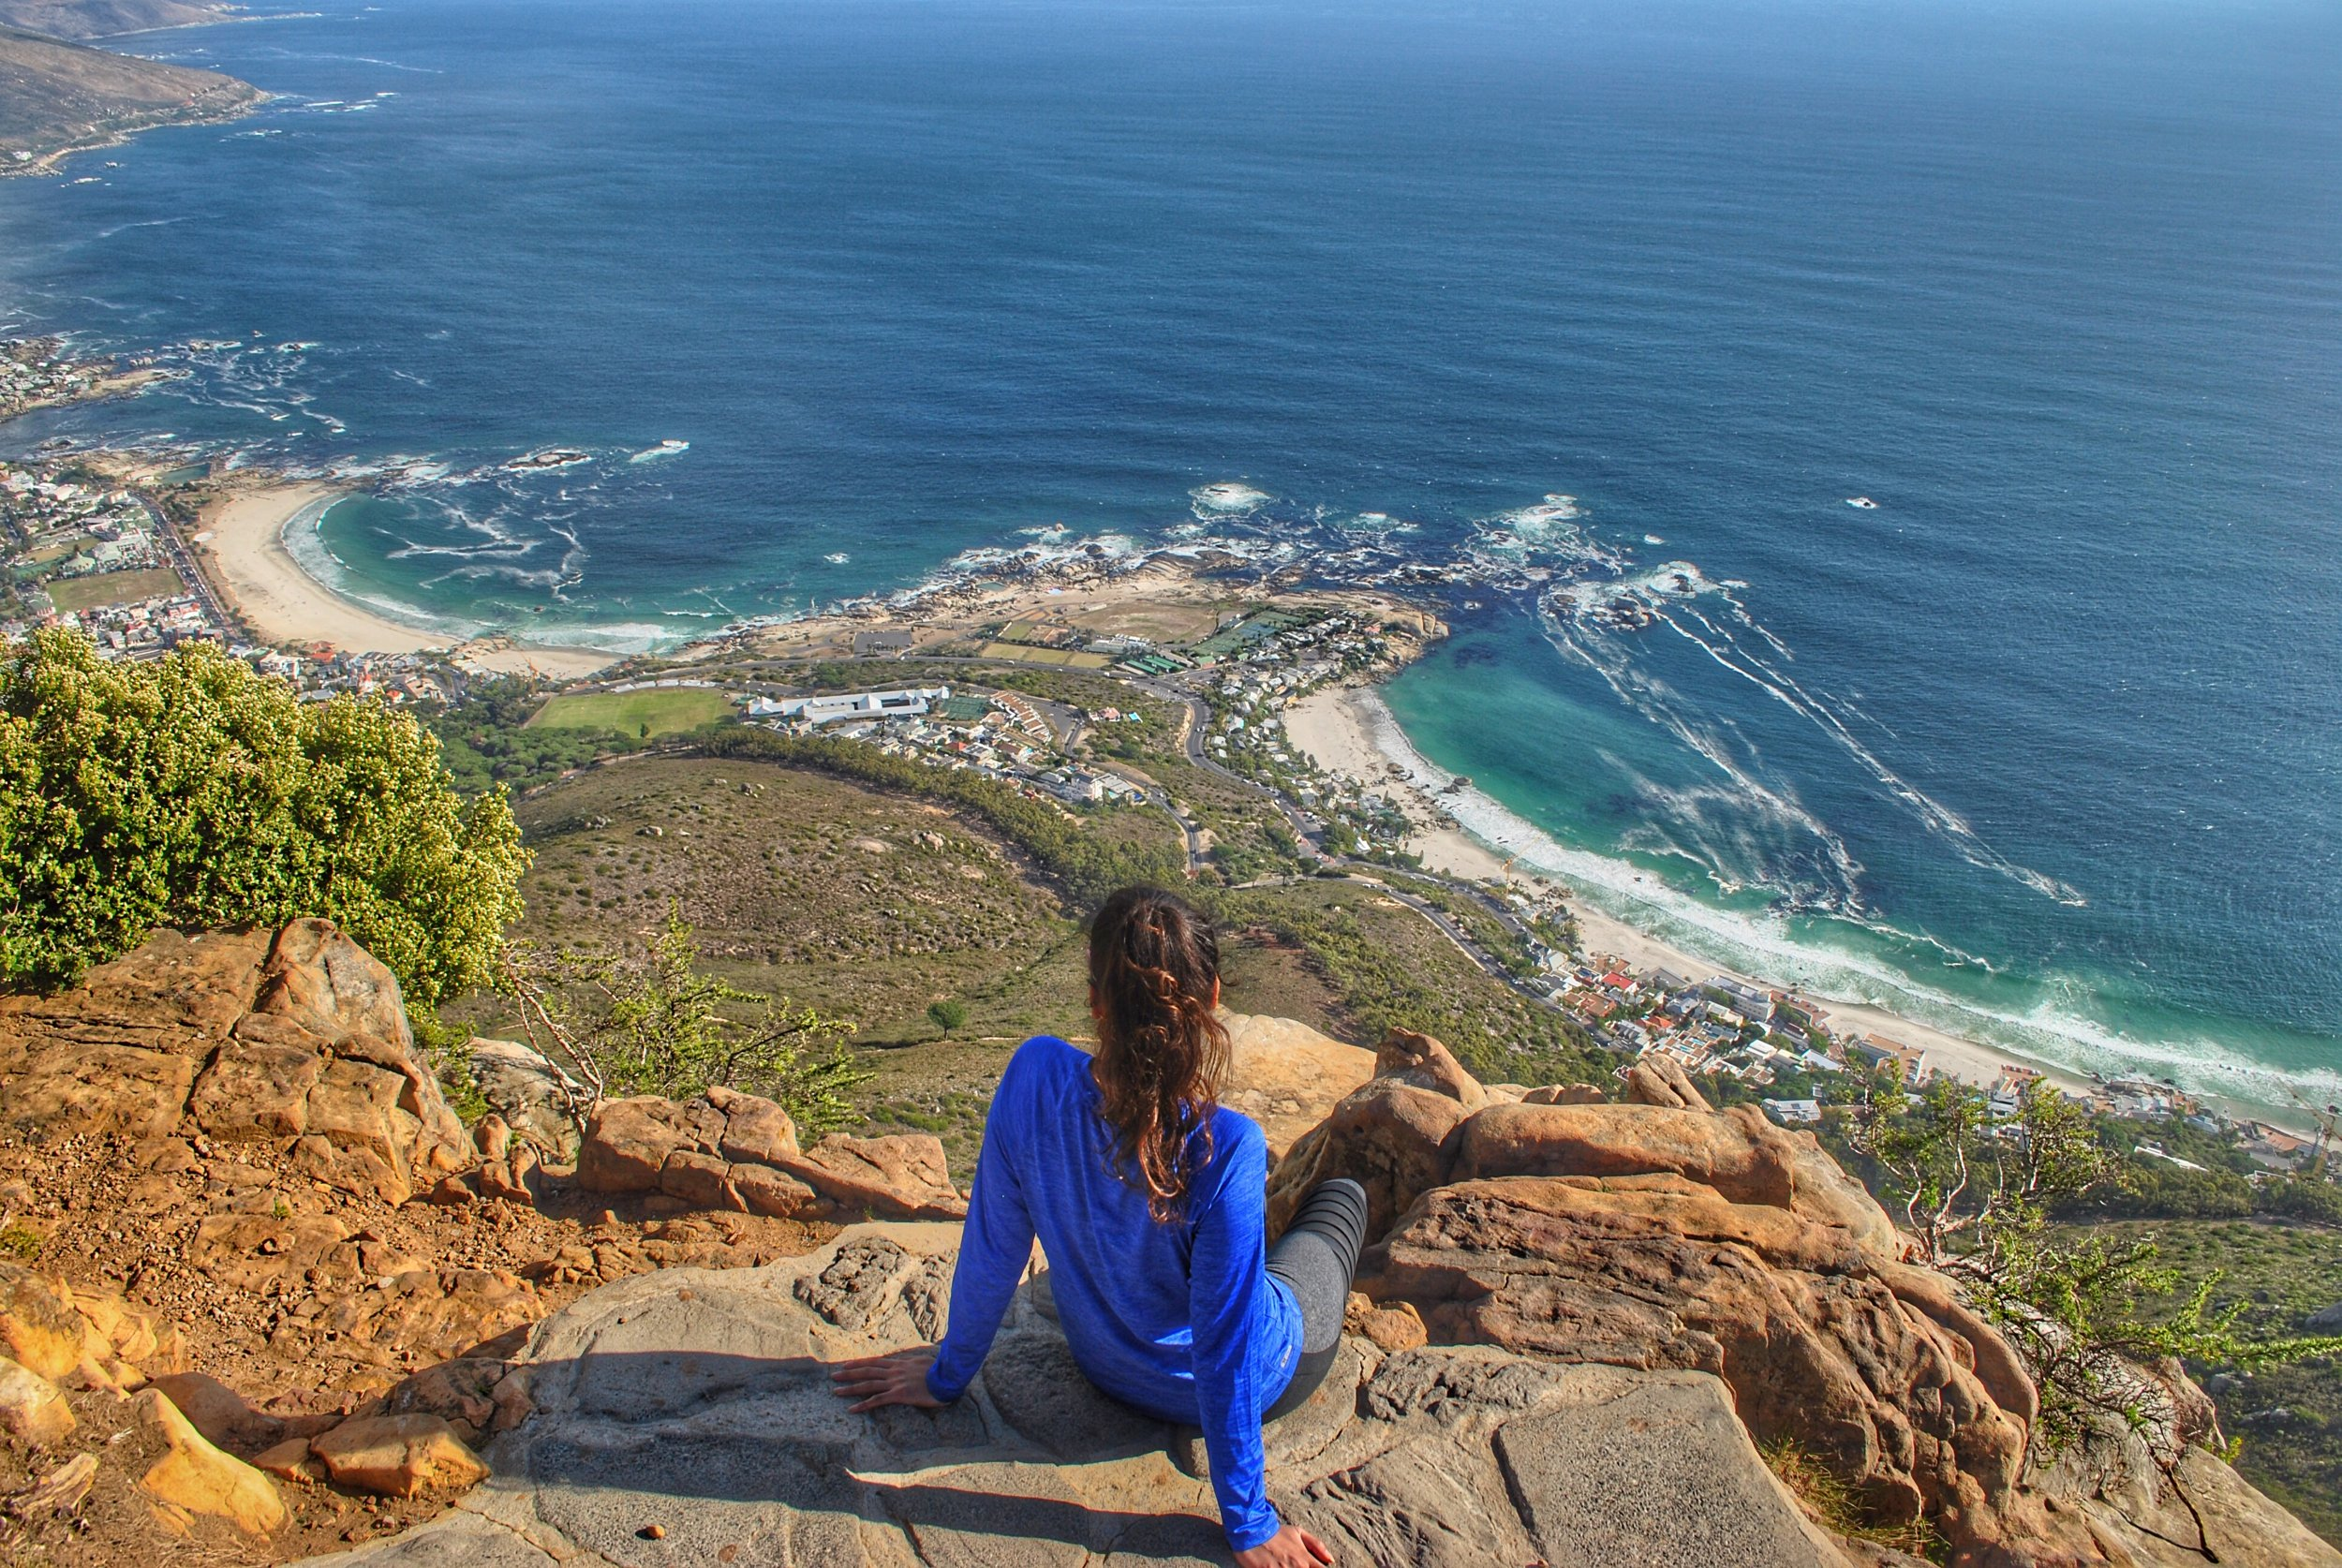 Lion's Head overlooking Camps Bay / Clifton Beaches